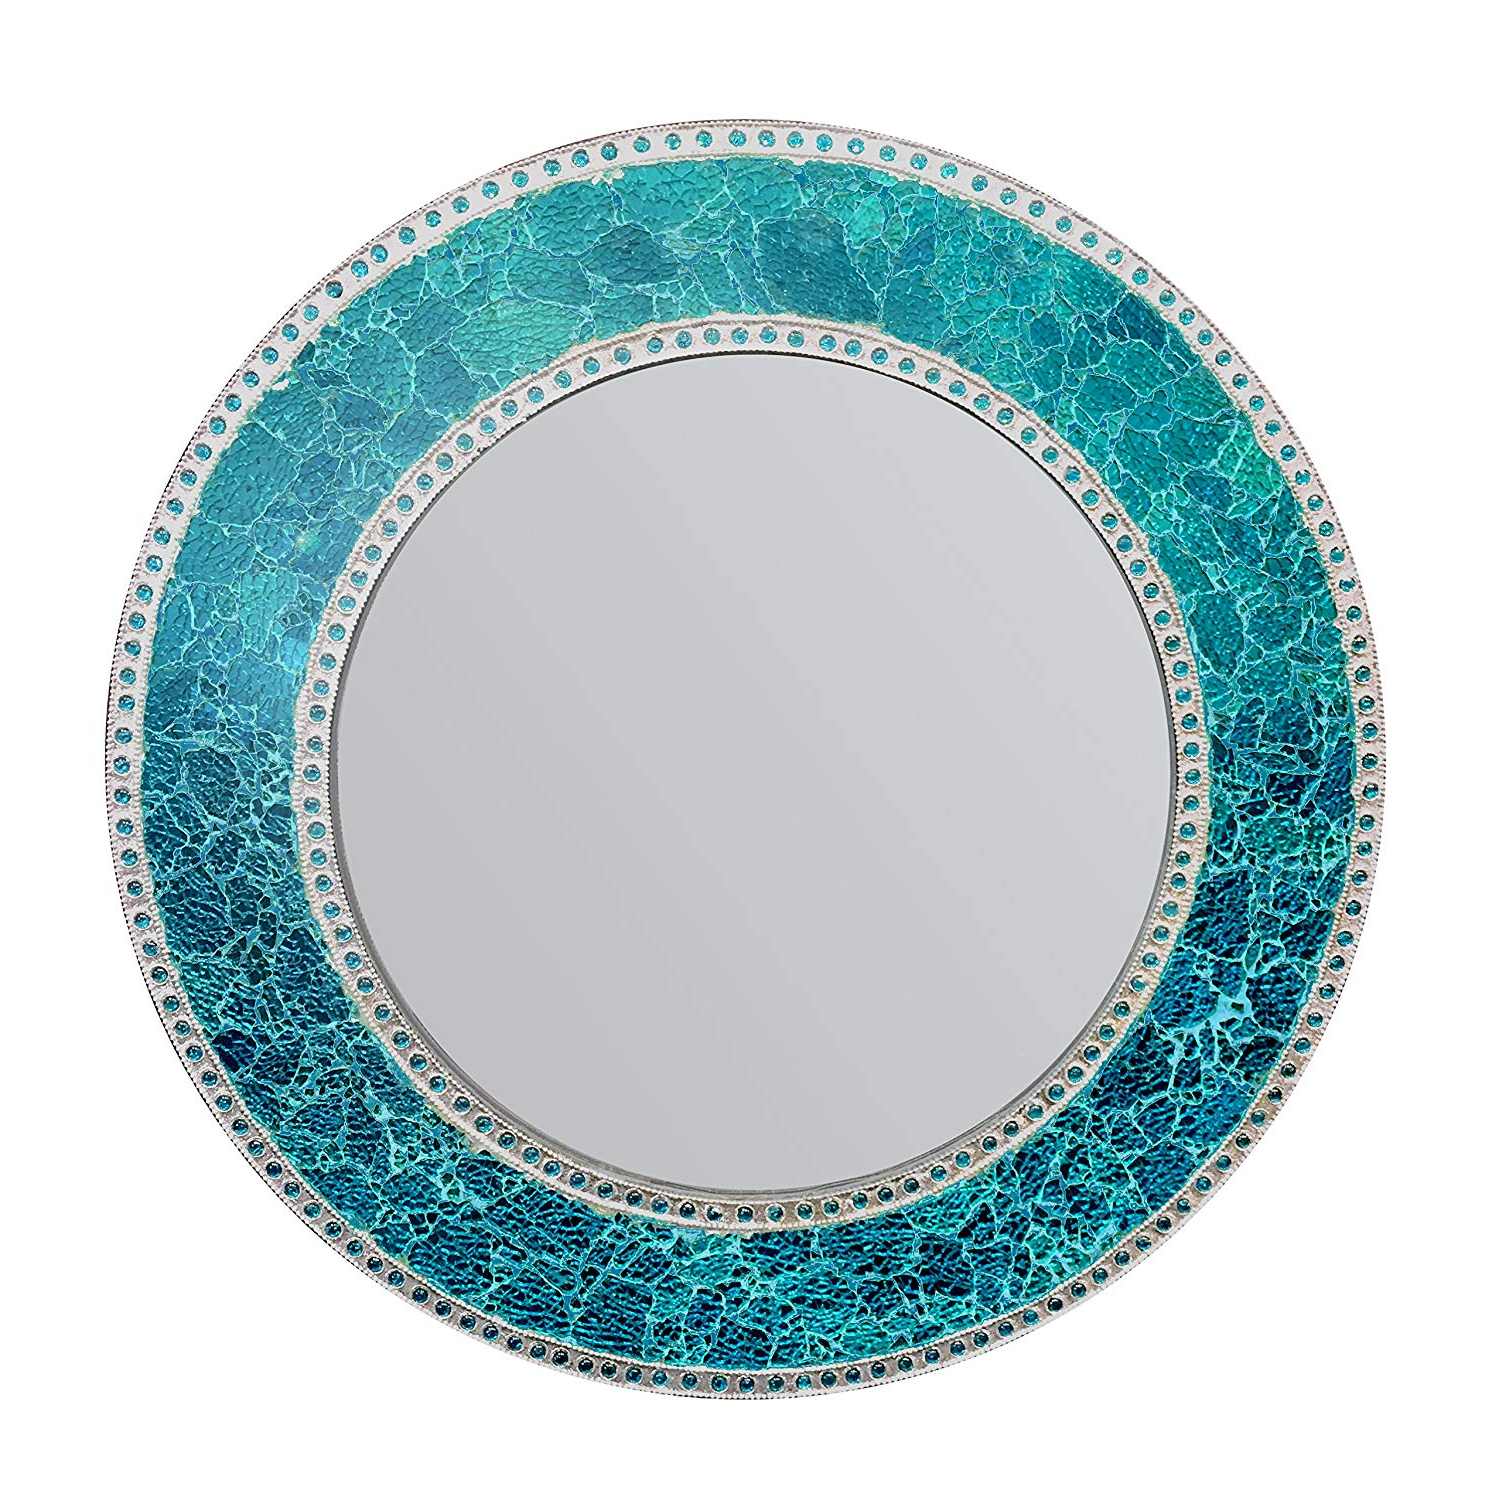 Round Mosaic Wall Mirrors For Well Liked Decorshore 24 Inch Round Crackled Glass Mosaic Wall Mirror, Sapphire (View 9 of 20)